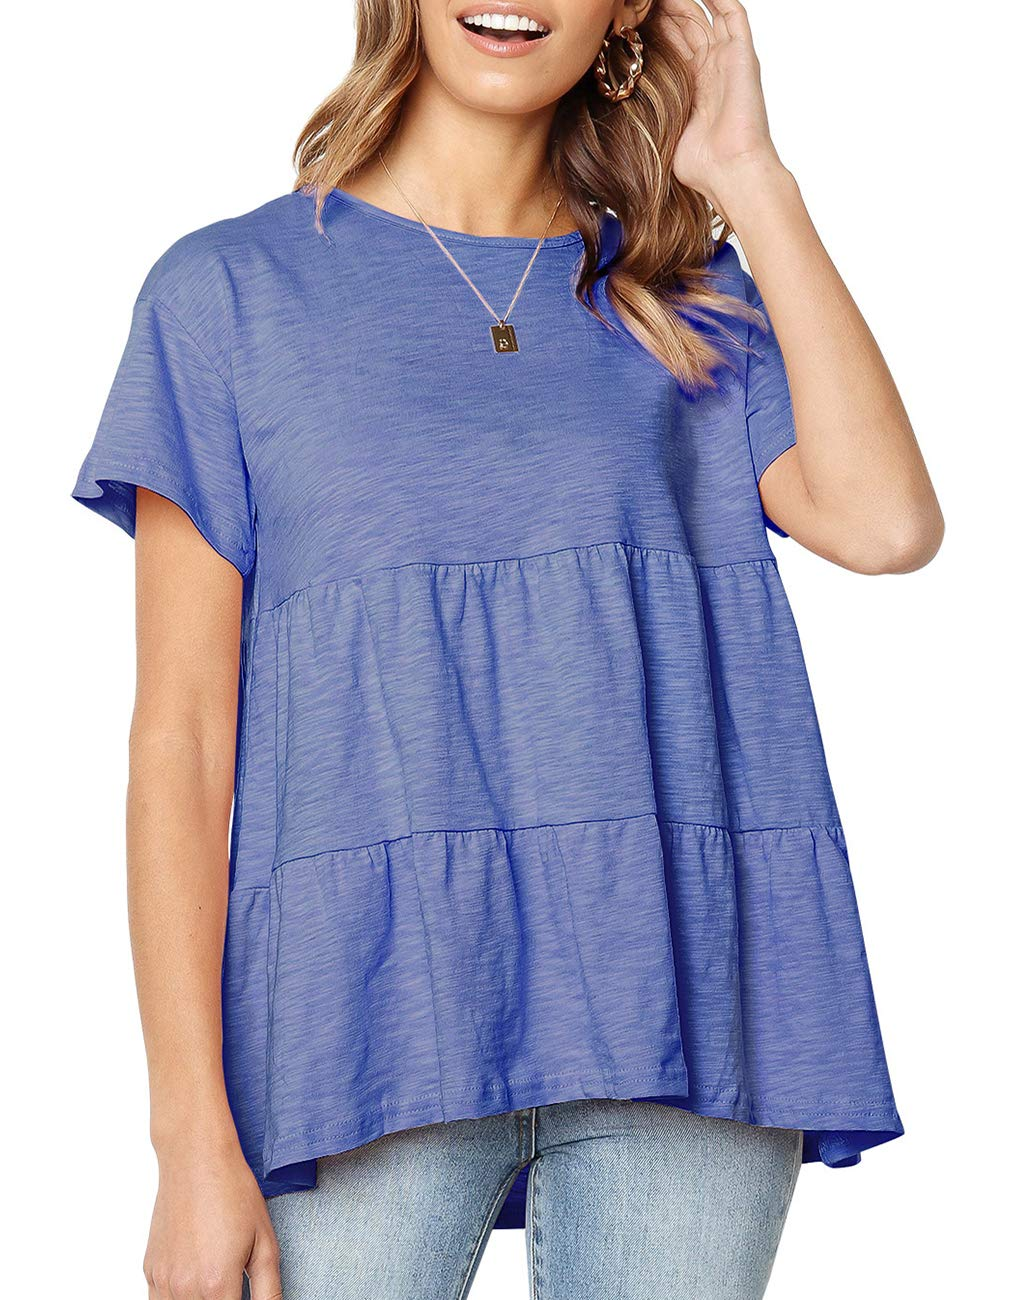 bluee Women's Short Sleeve Flounce Blouse Loose Solid Ruffle High Low Hem Tunic Top Casual Round Neck T Shirt (M, Pink)